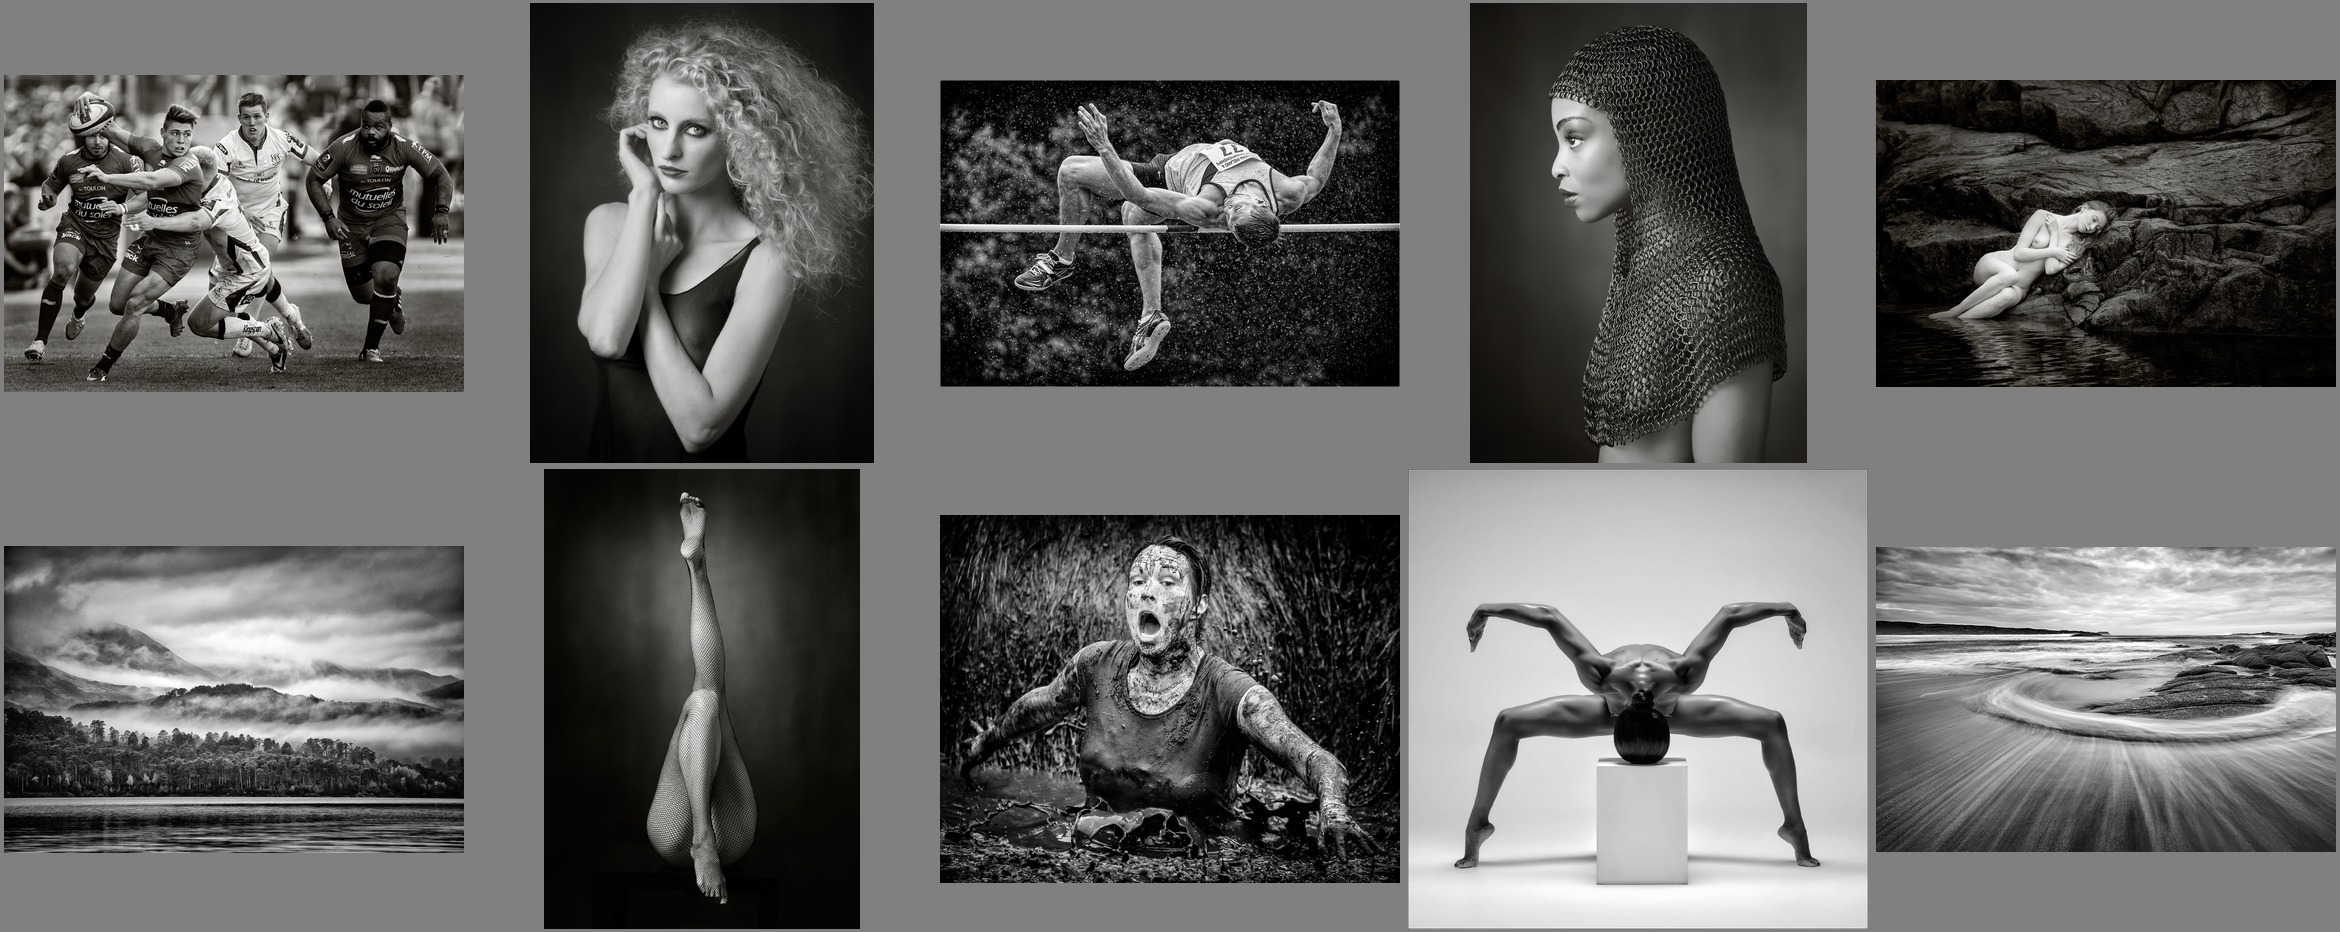 2nd place monochrome print panel - Creative Photo Imaging Club.jpg